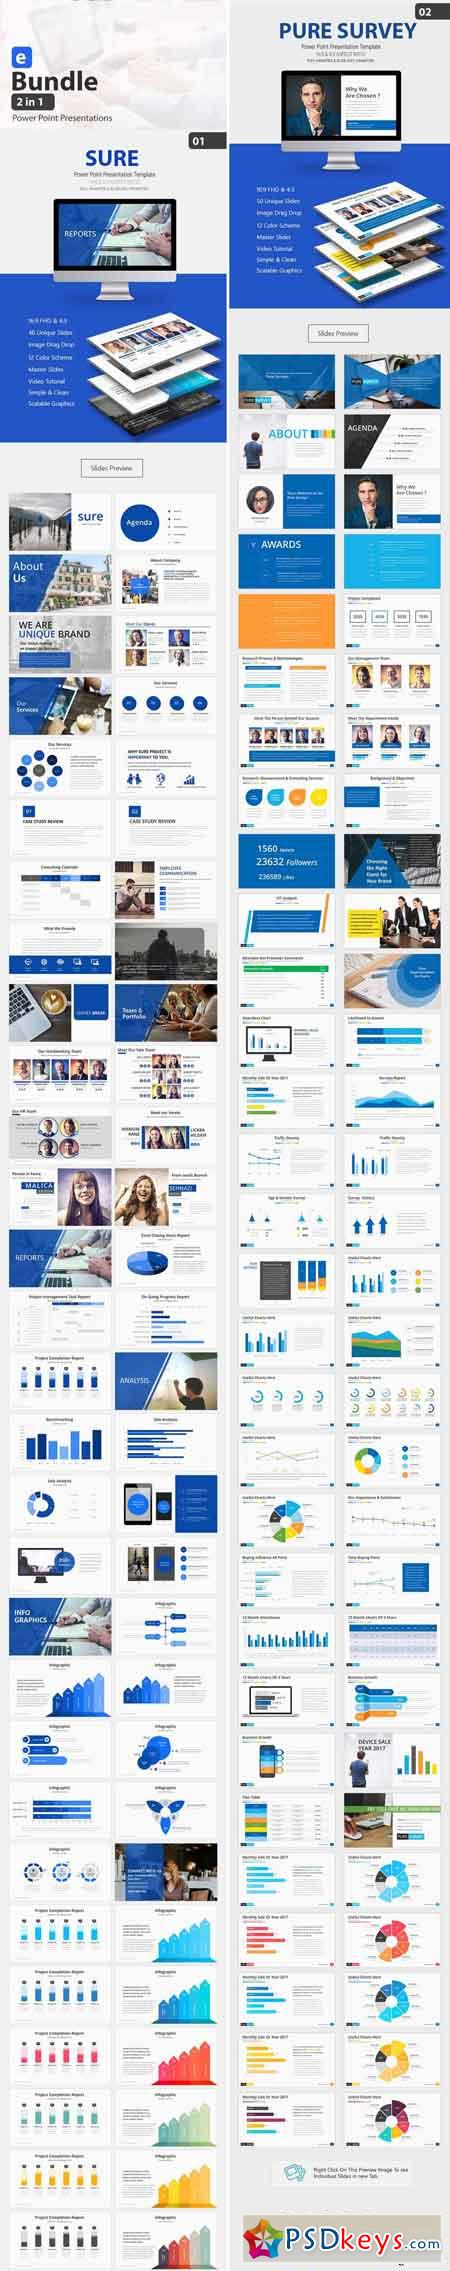 E Bundle 2 in 1 Power Point Presentation 20898124